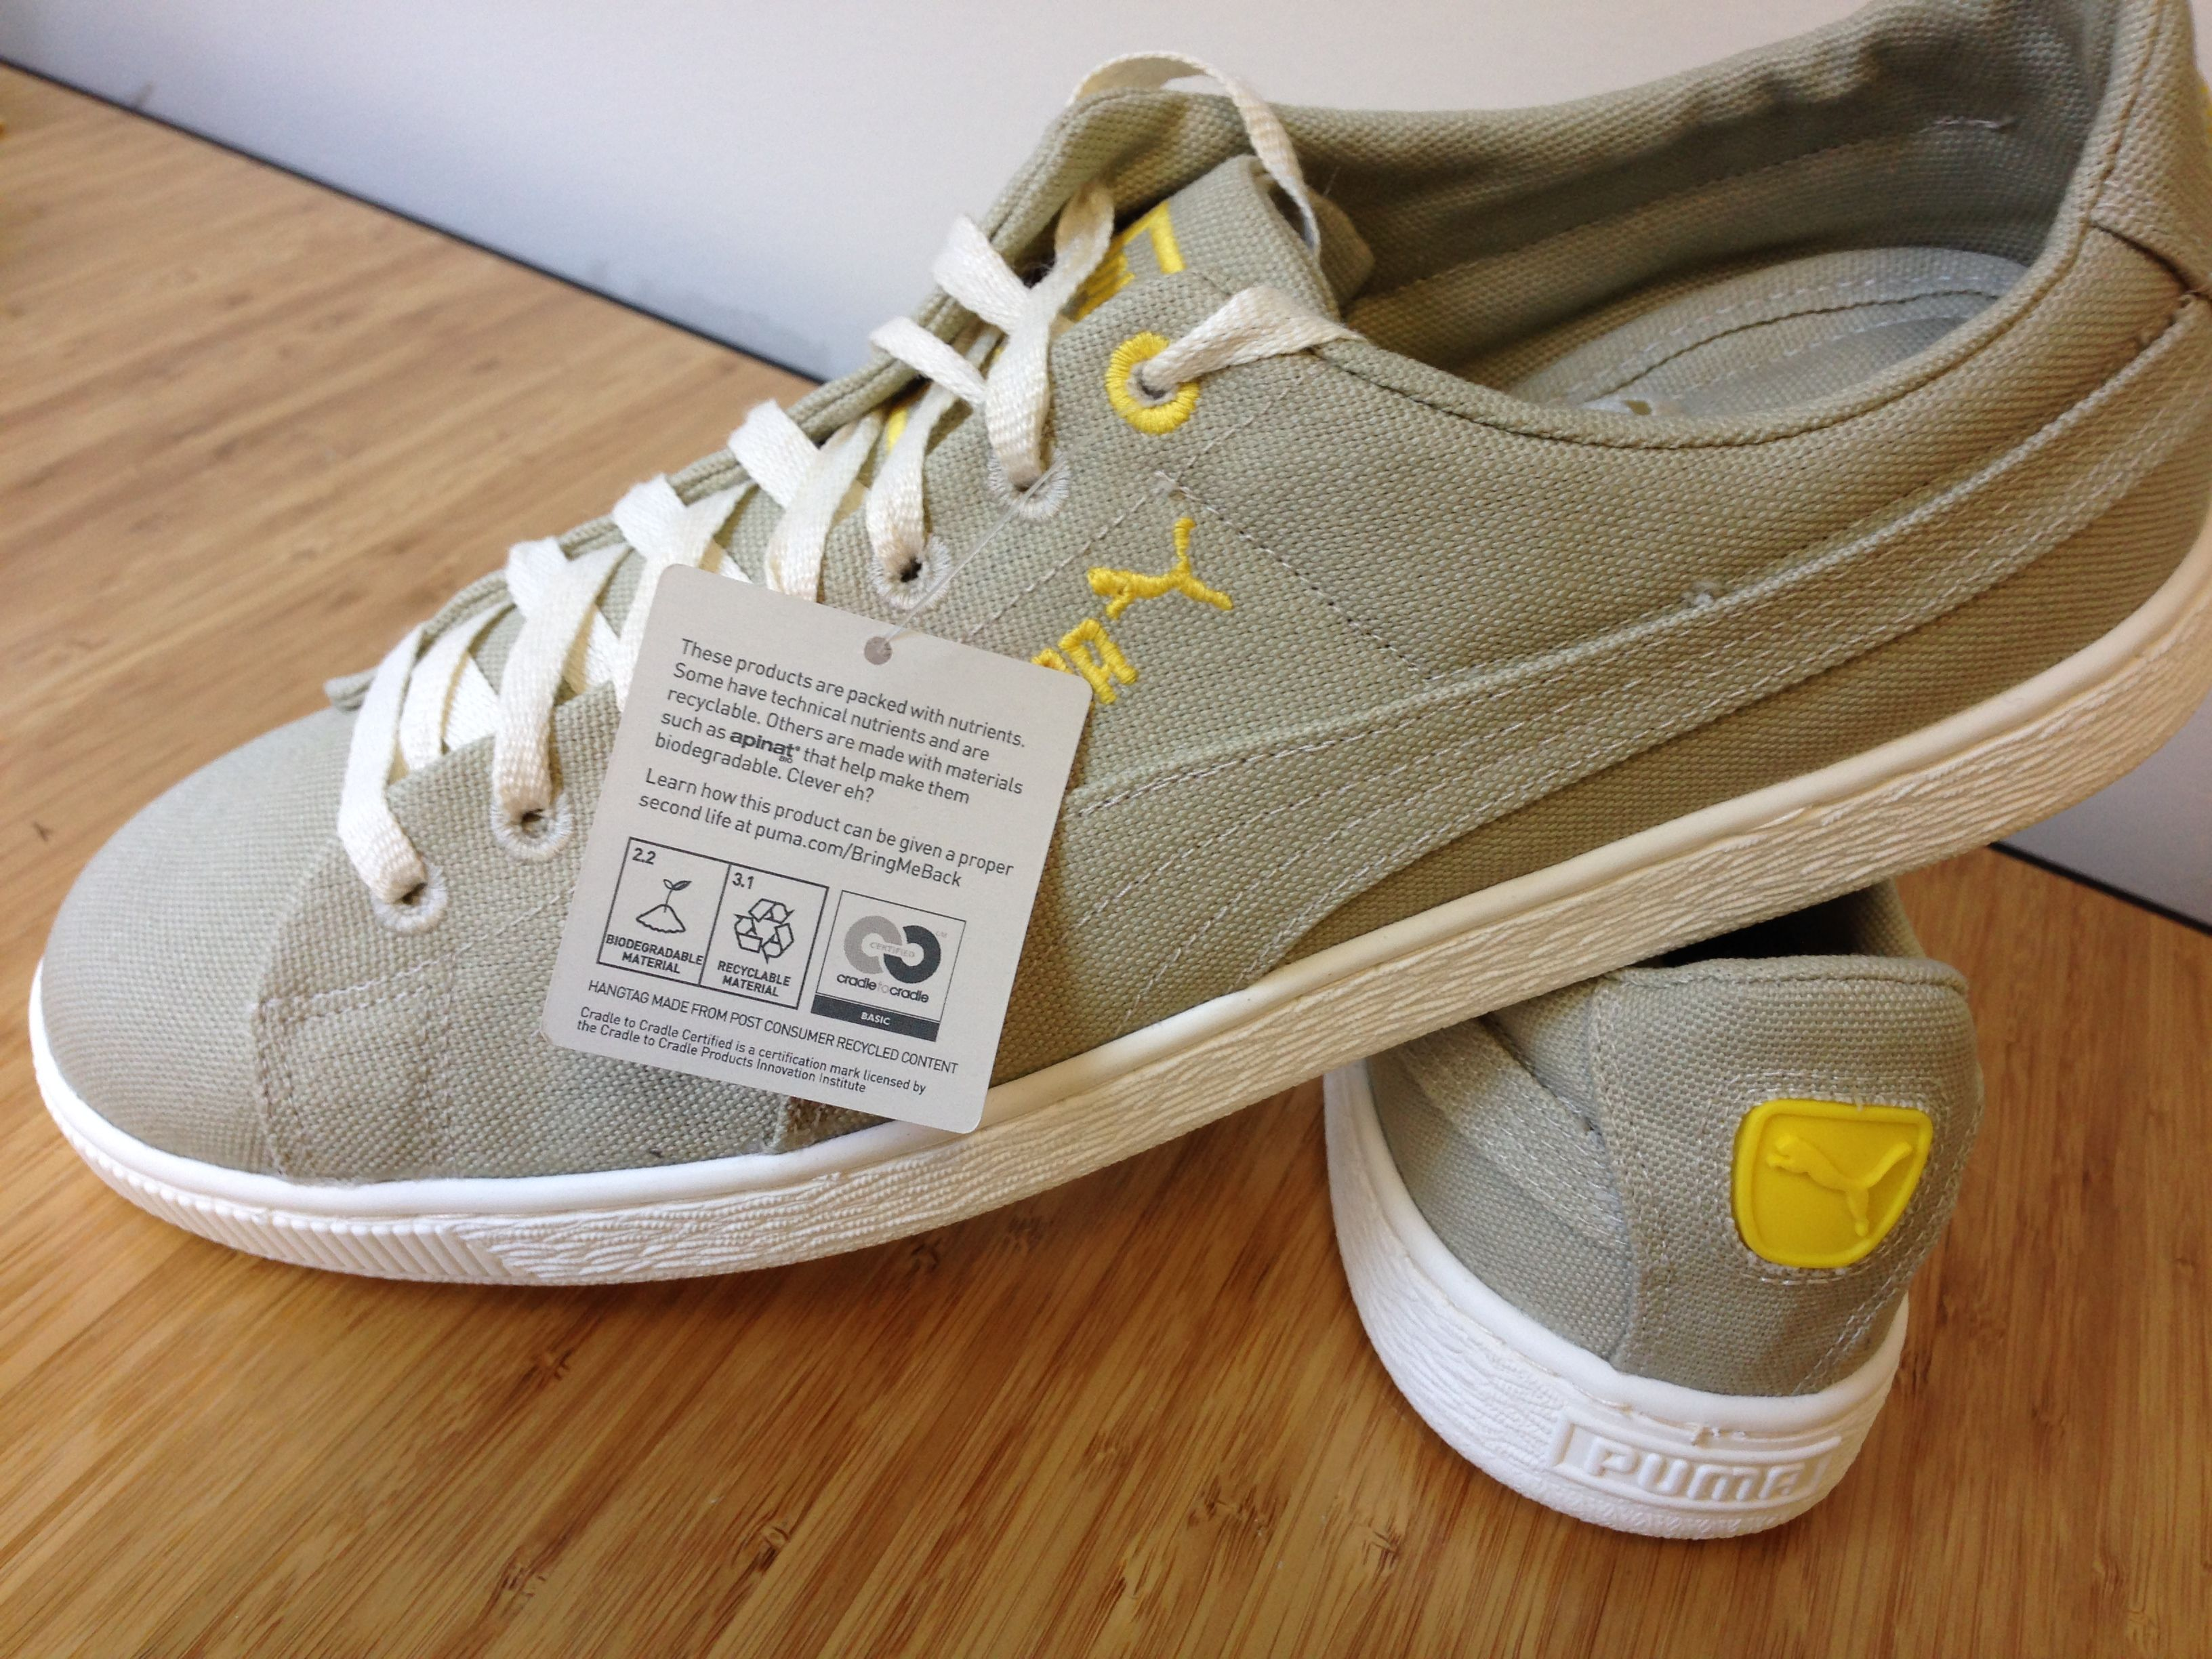 Puma Incycle Sneakers. PUMA InCycle Collection is Cradle to Cradle  CertifiedCM by the Cradle to